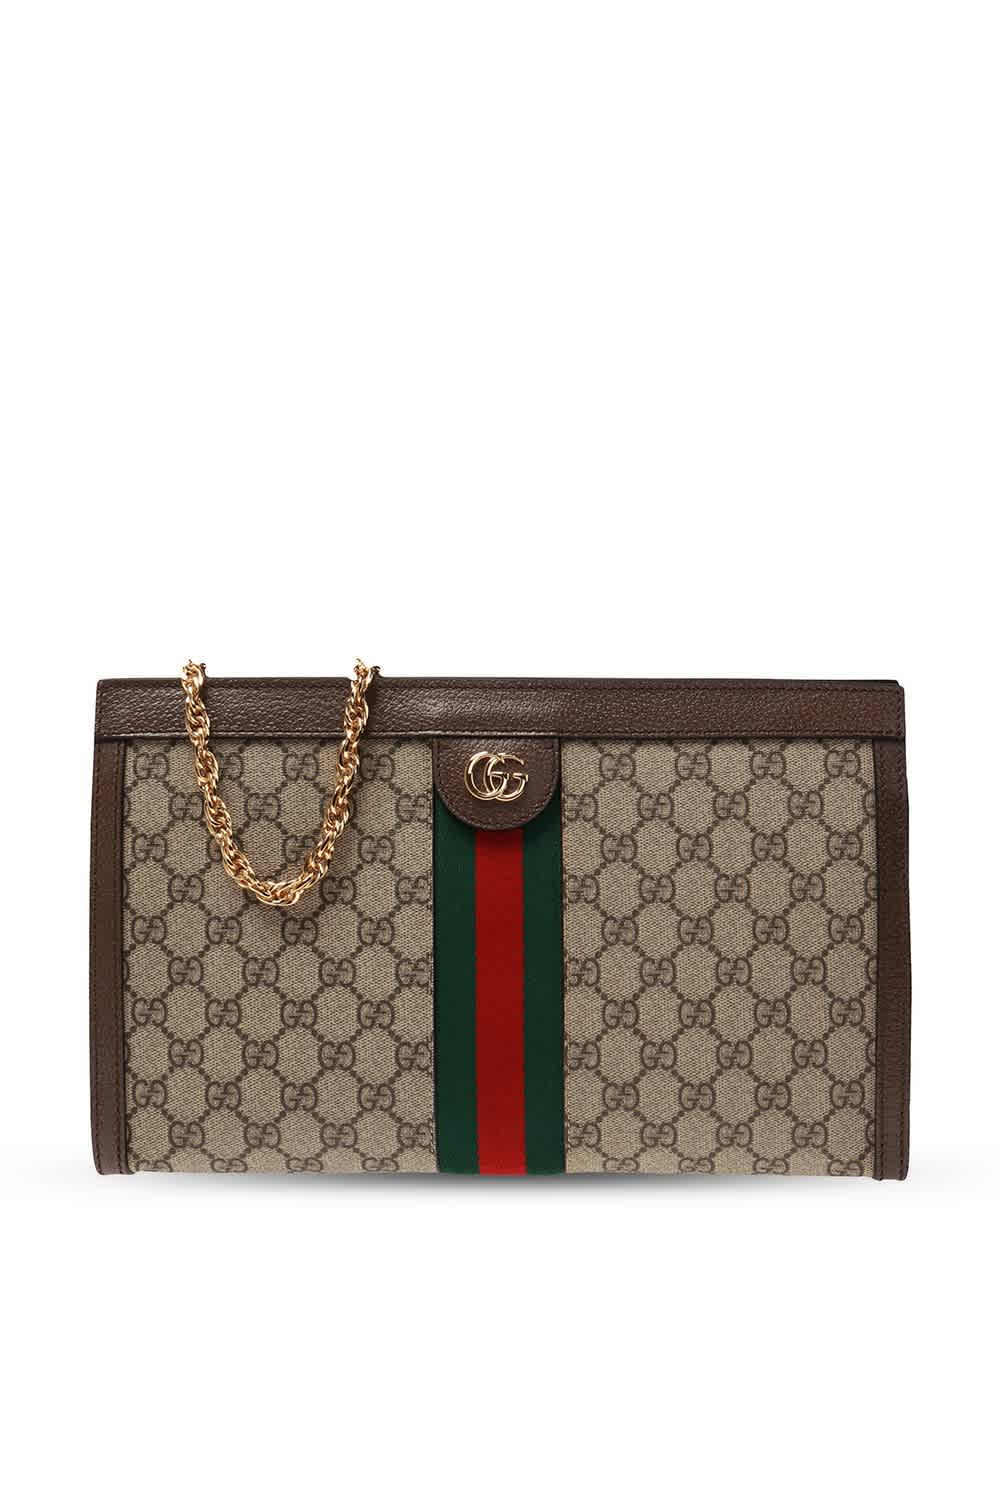 Gucci Ophidia Gg Medium Shoulder Bag In Beige,blue,brown,gold Tone,red,two Tone